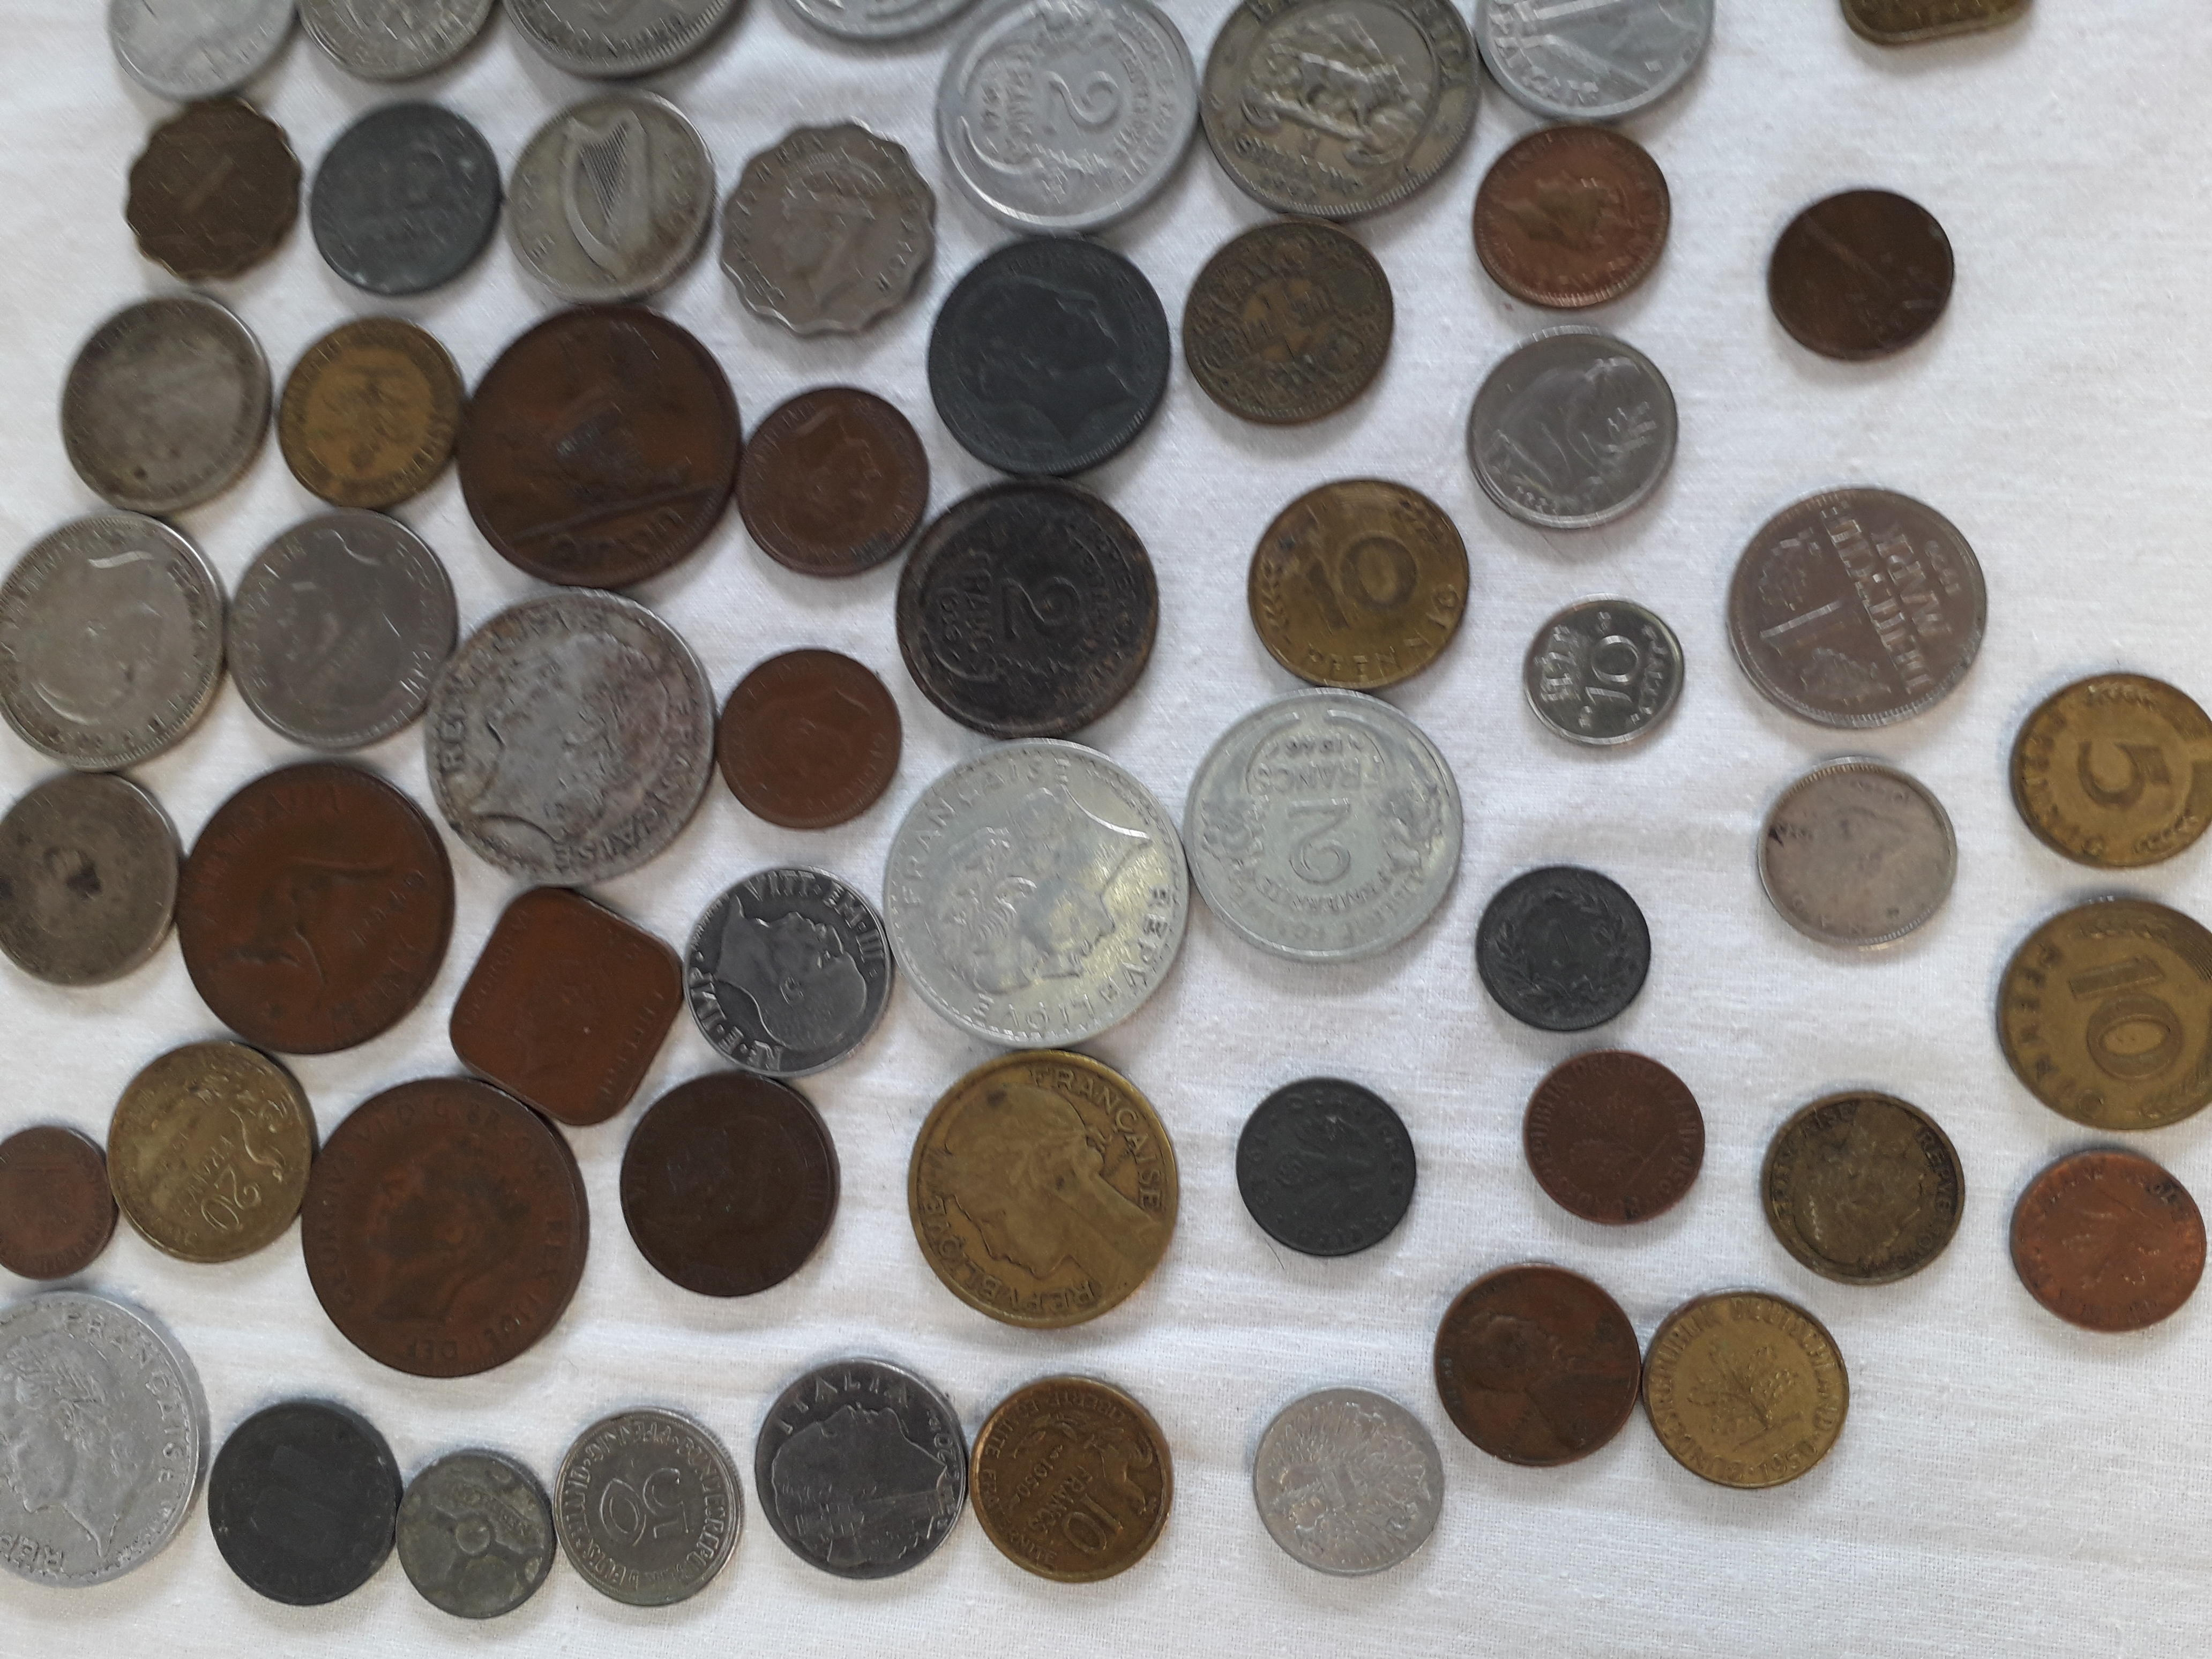 95 VINTAGE COINS FROM ALL OVER THE WORLD